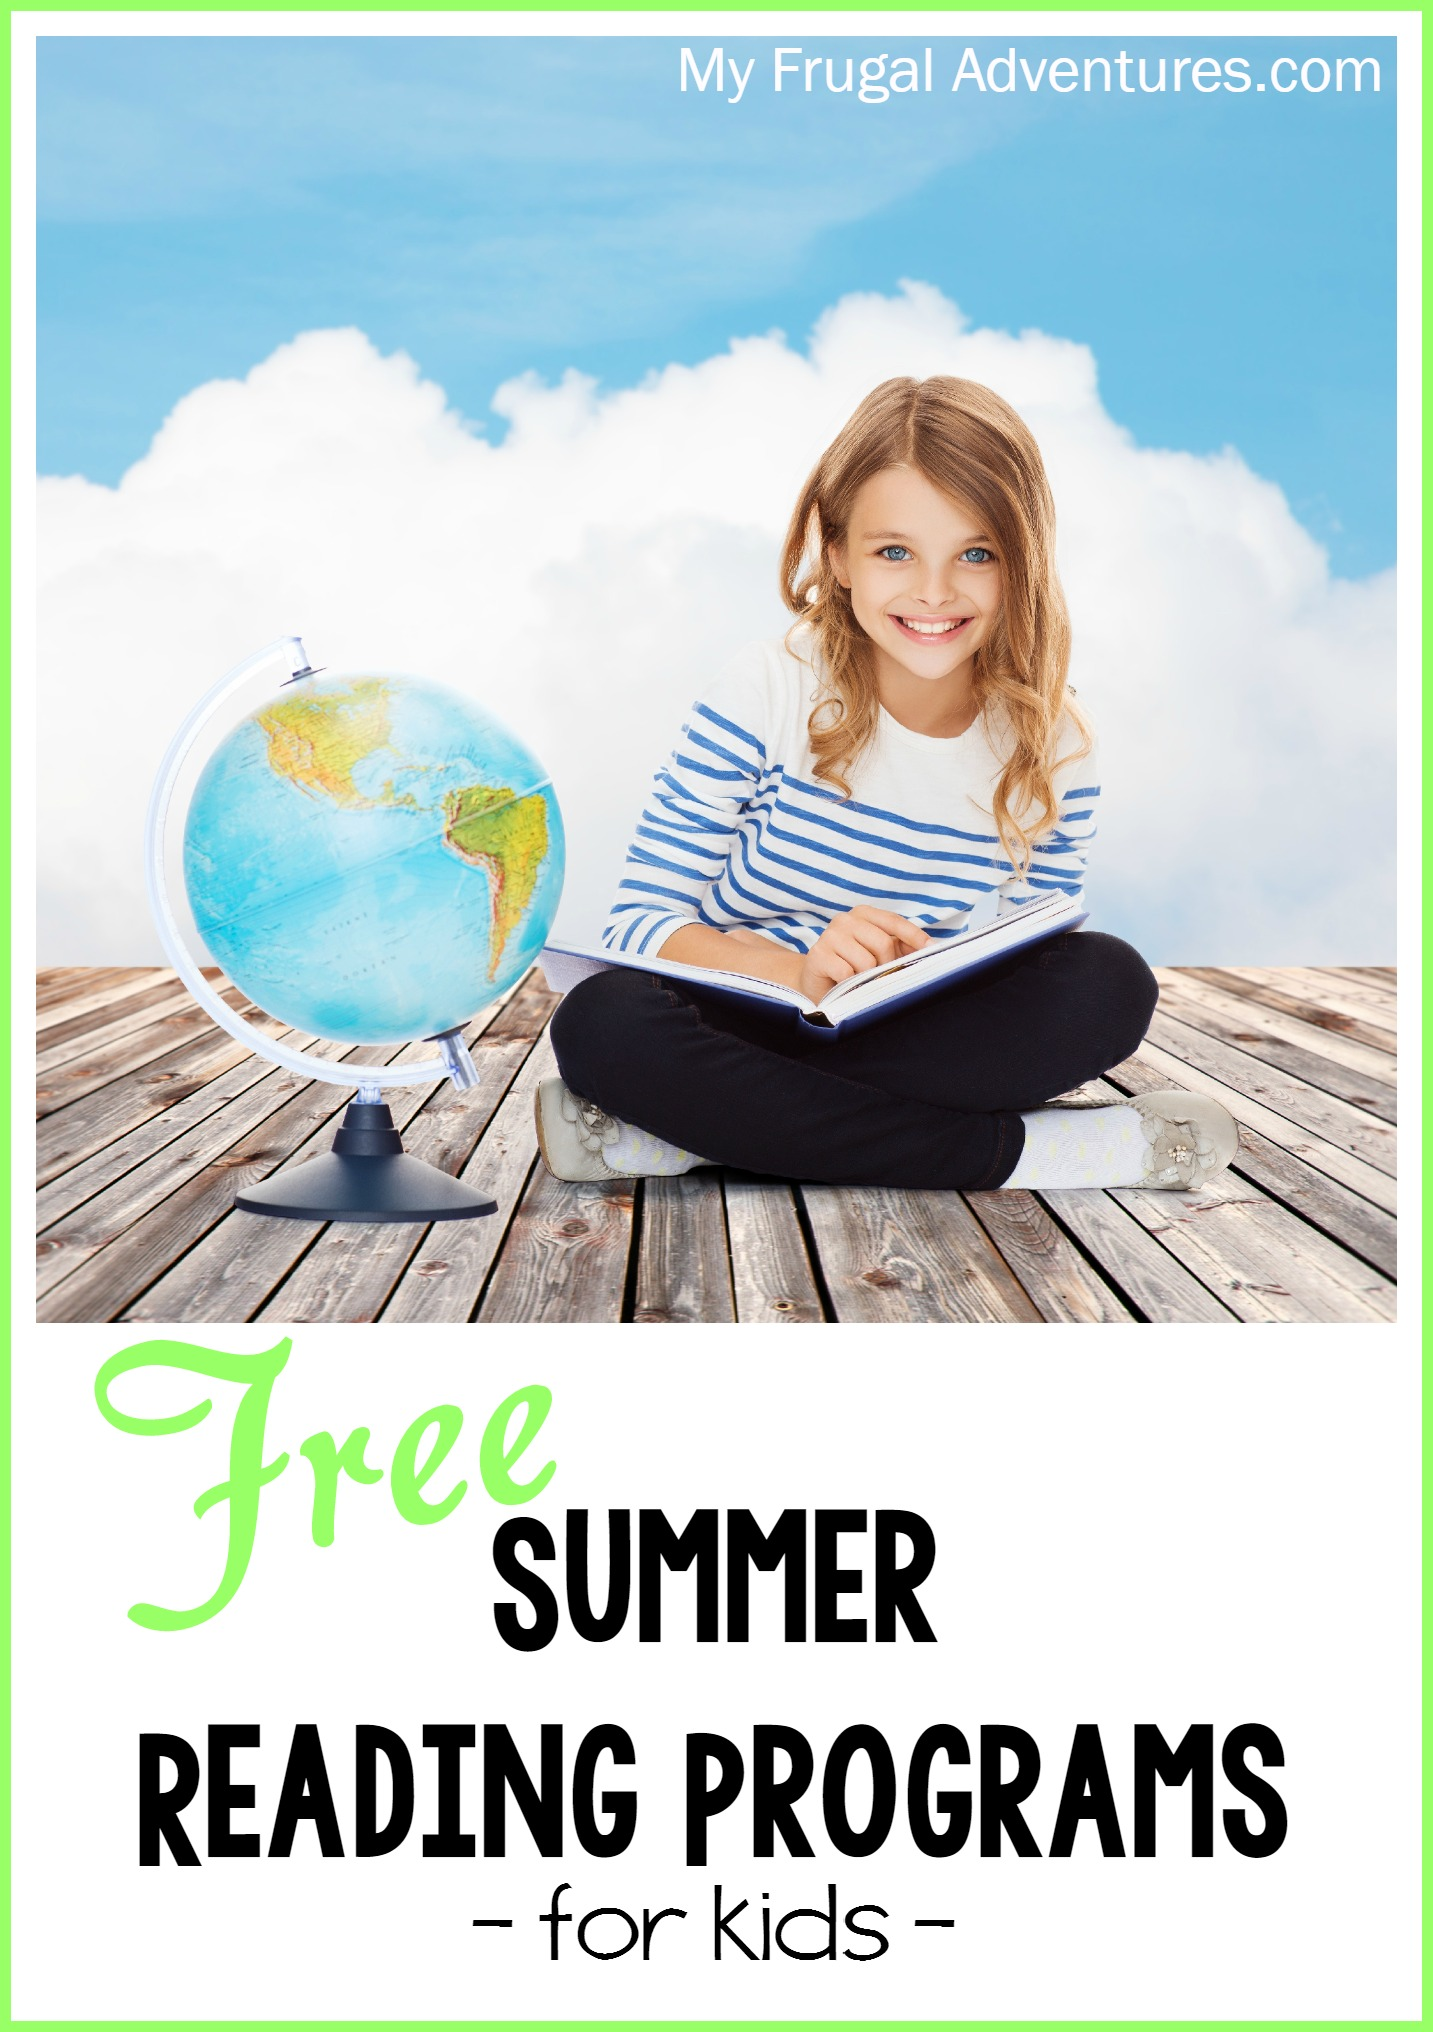 Free Summer Reading Programs for Kids 2015 - My Frugal Adventures